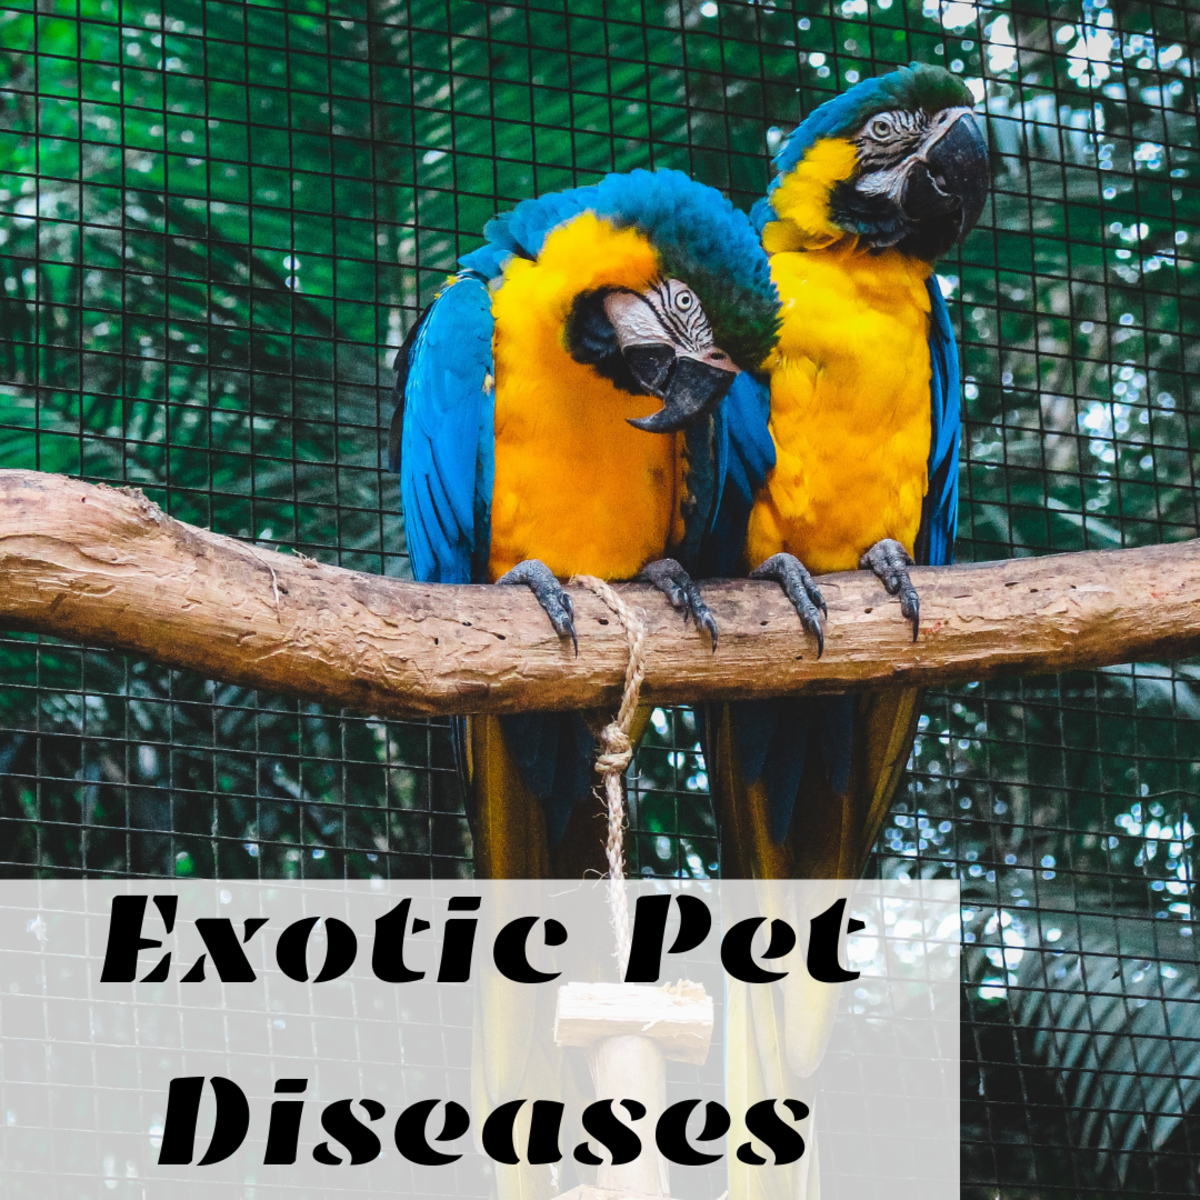 Exotic Pet Diseases